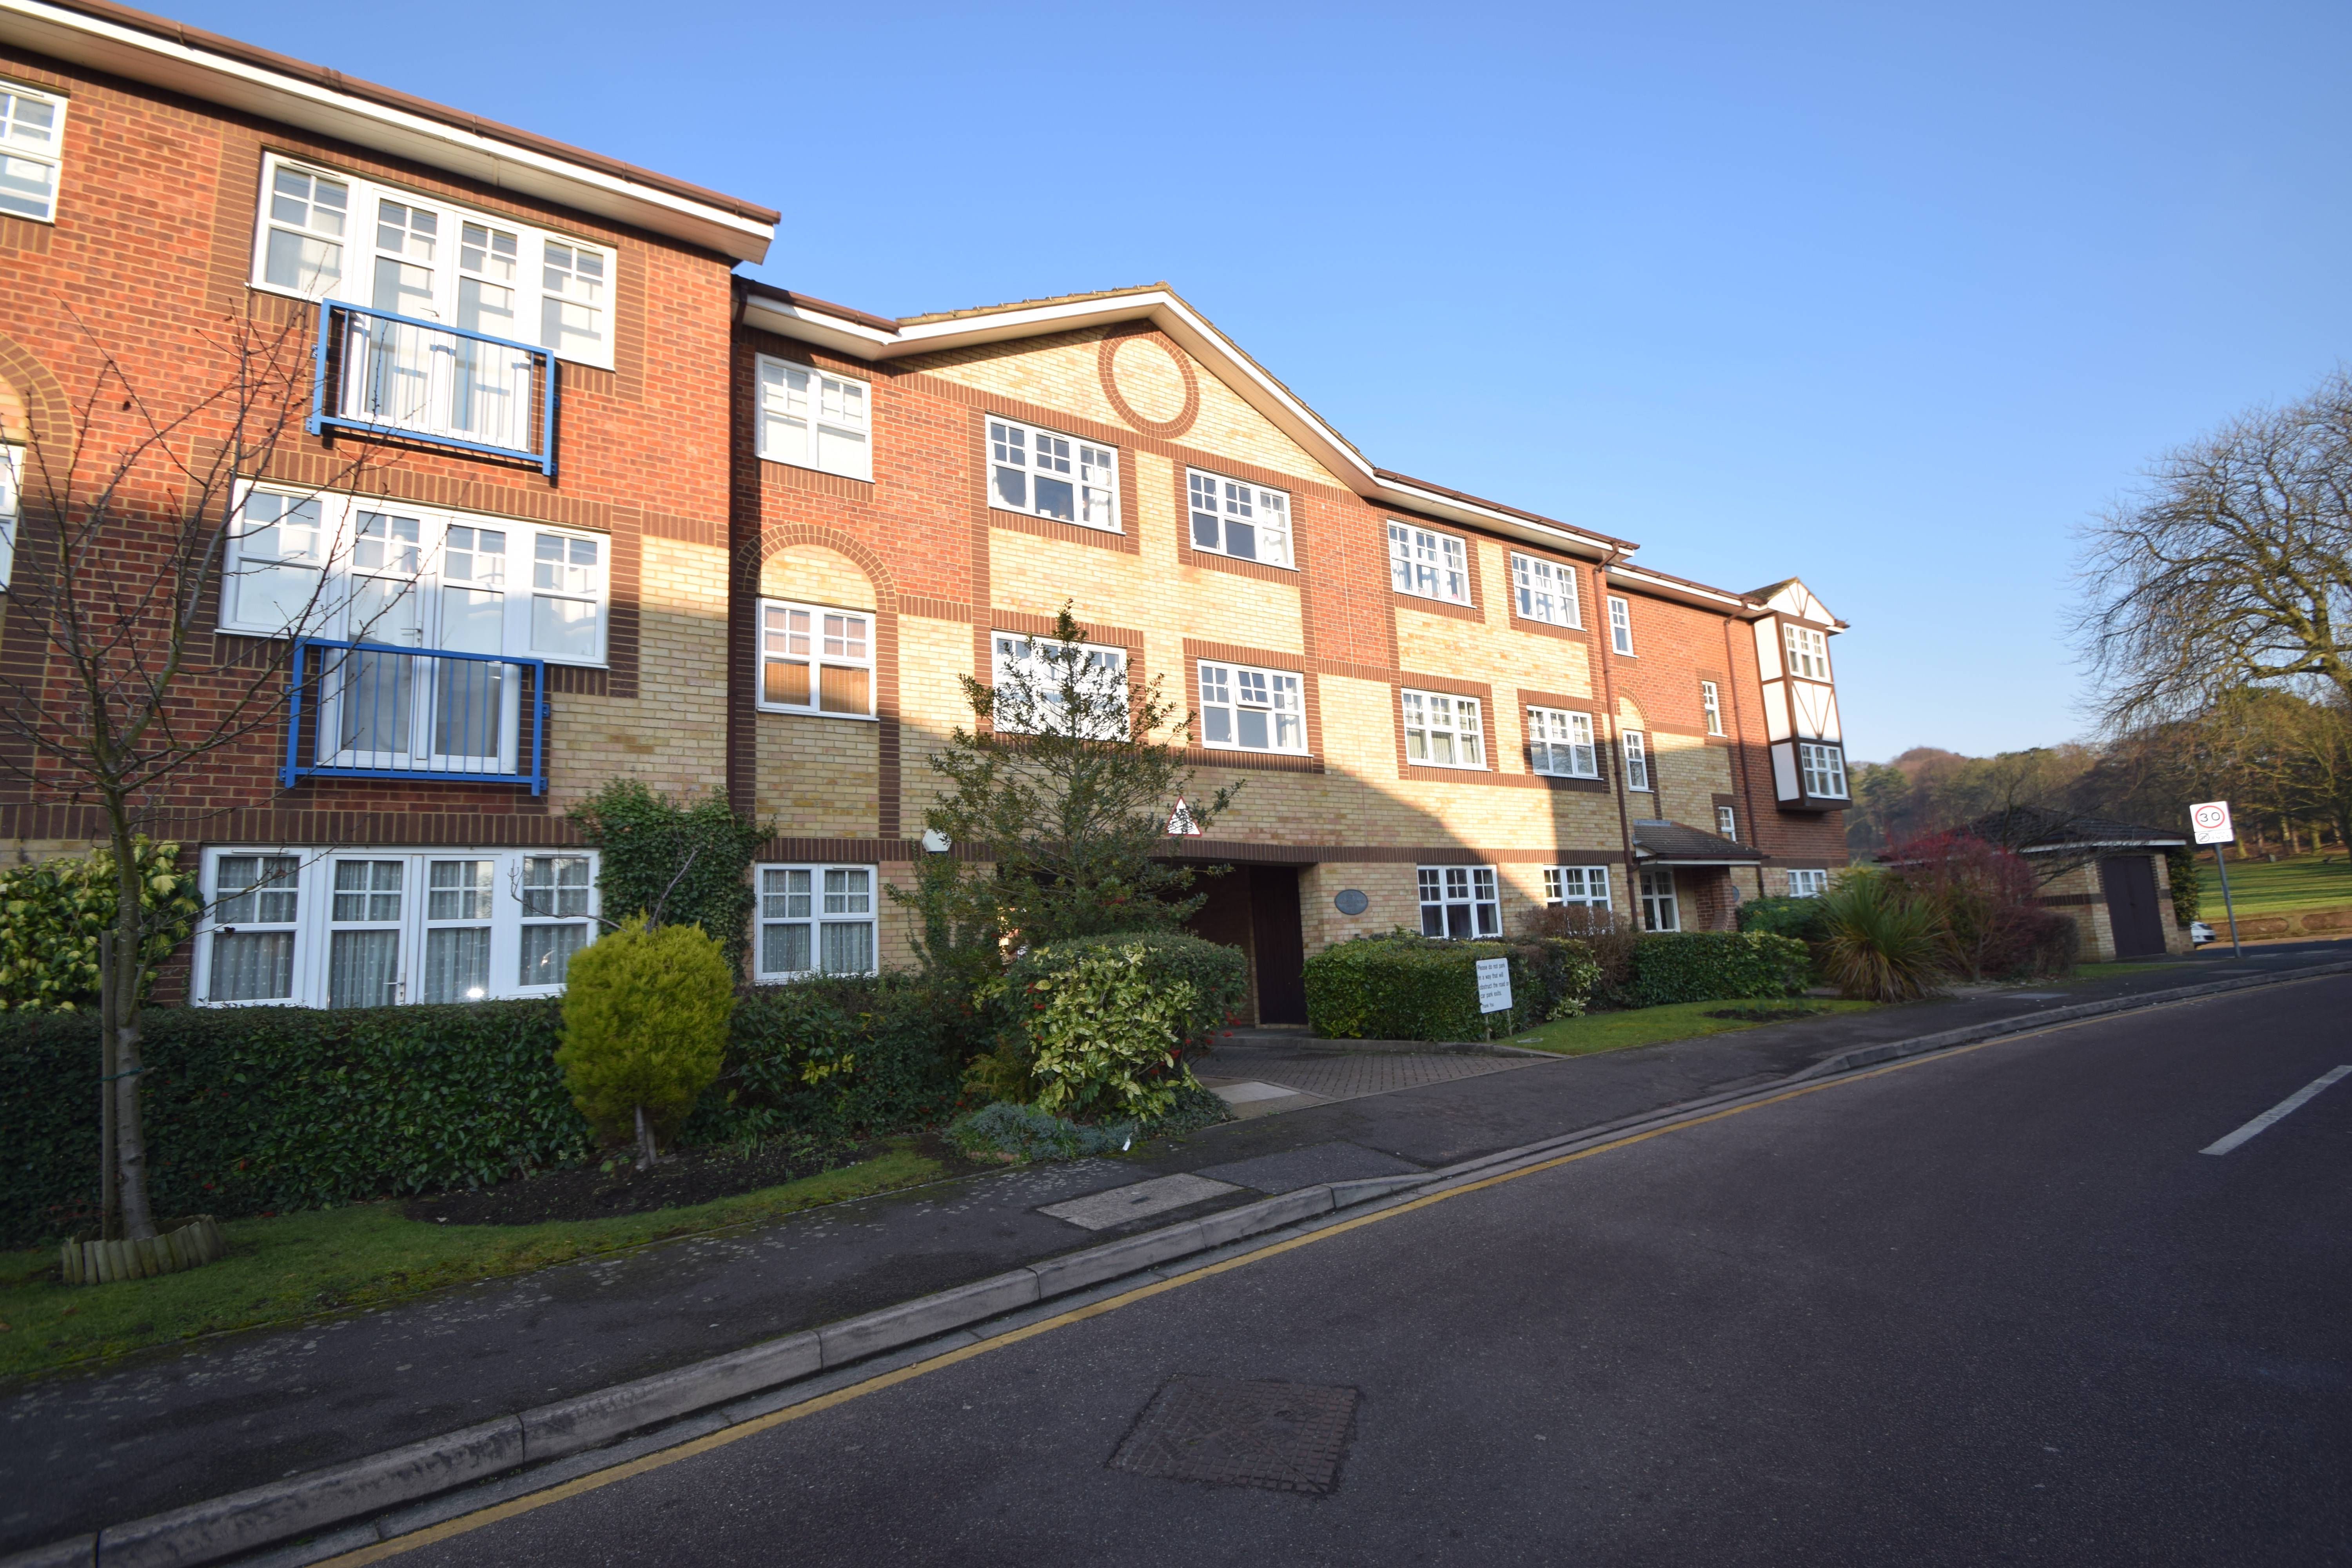 2 bedroom Apartment / Studio to buy in Kings Chase, Luton